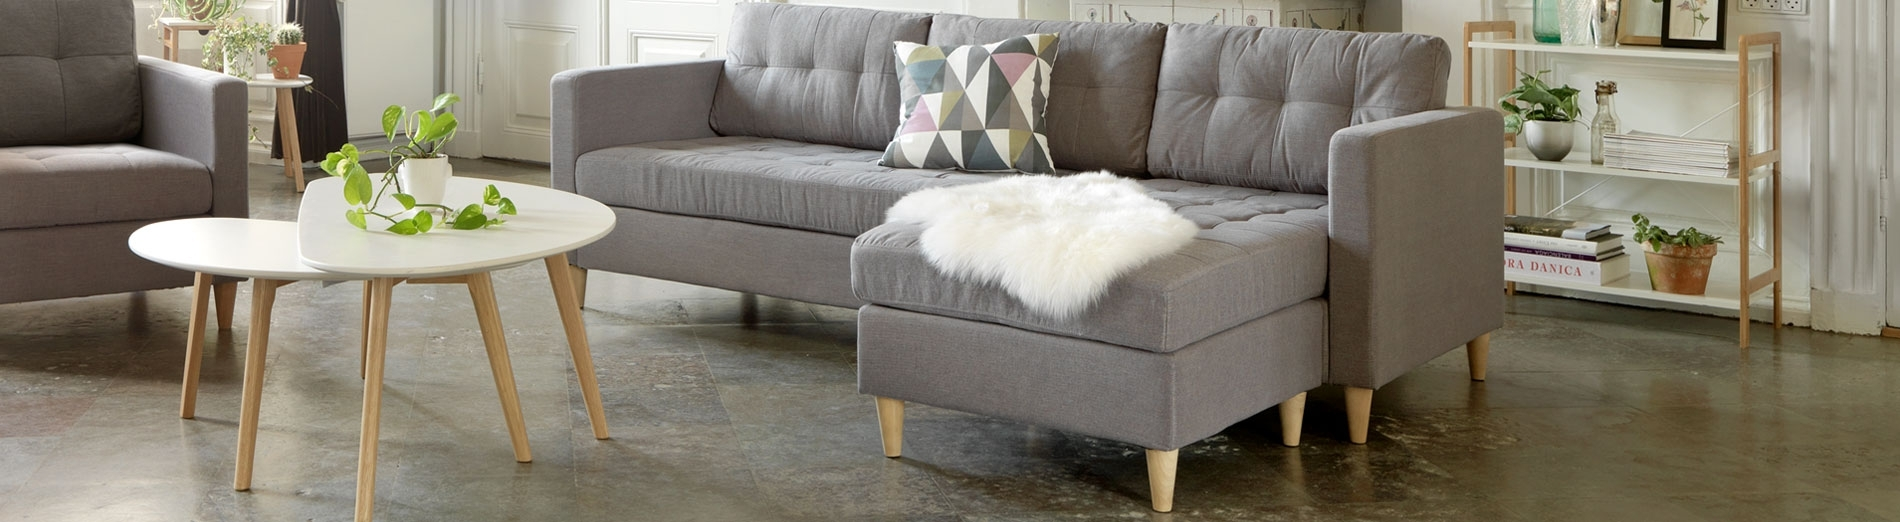 Living Room Furniture | Furniture | Jysk Canada With Jysk Sectional Sofas (Image 9 of 10)